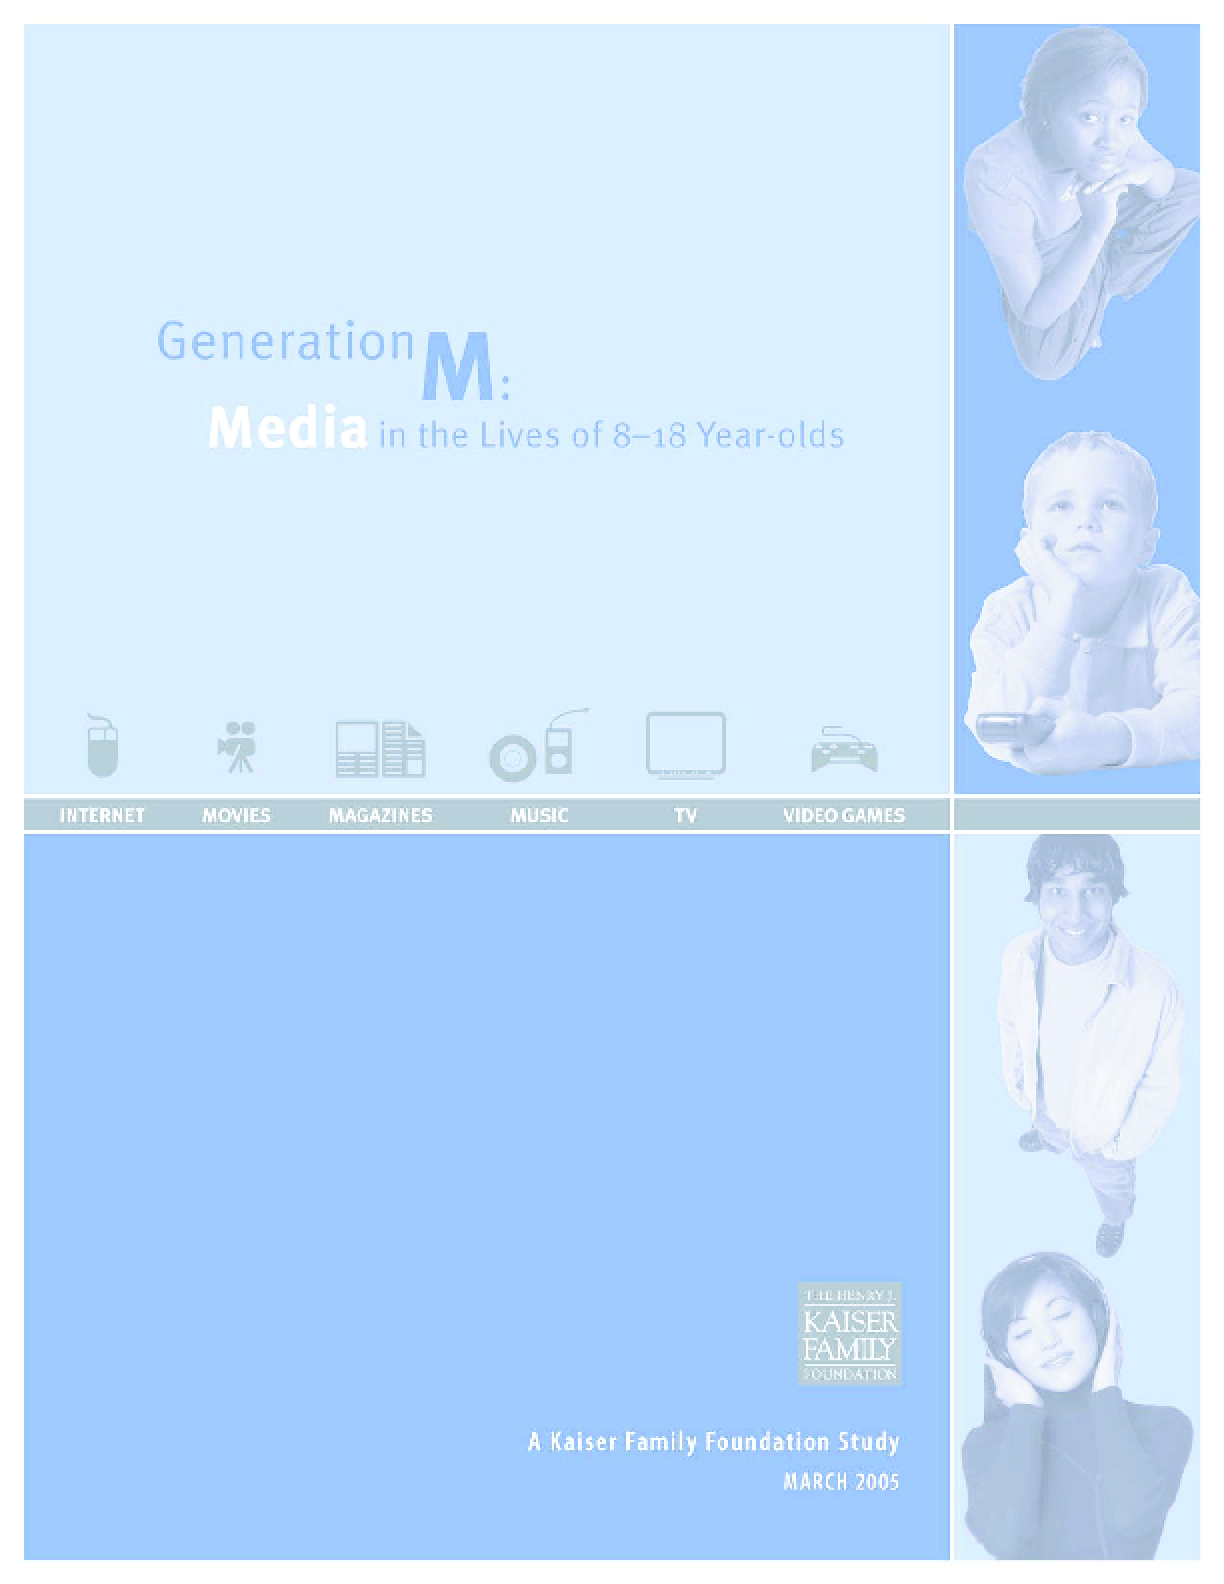 Generation M: Media in the Lives of 8-18 Year-olds